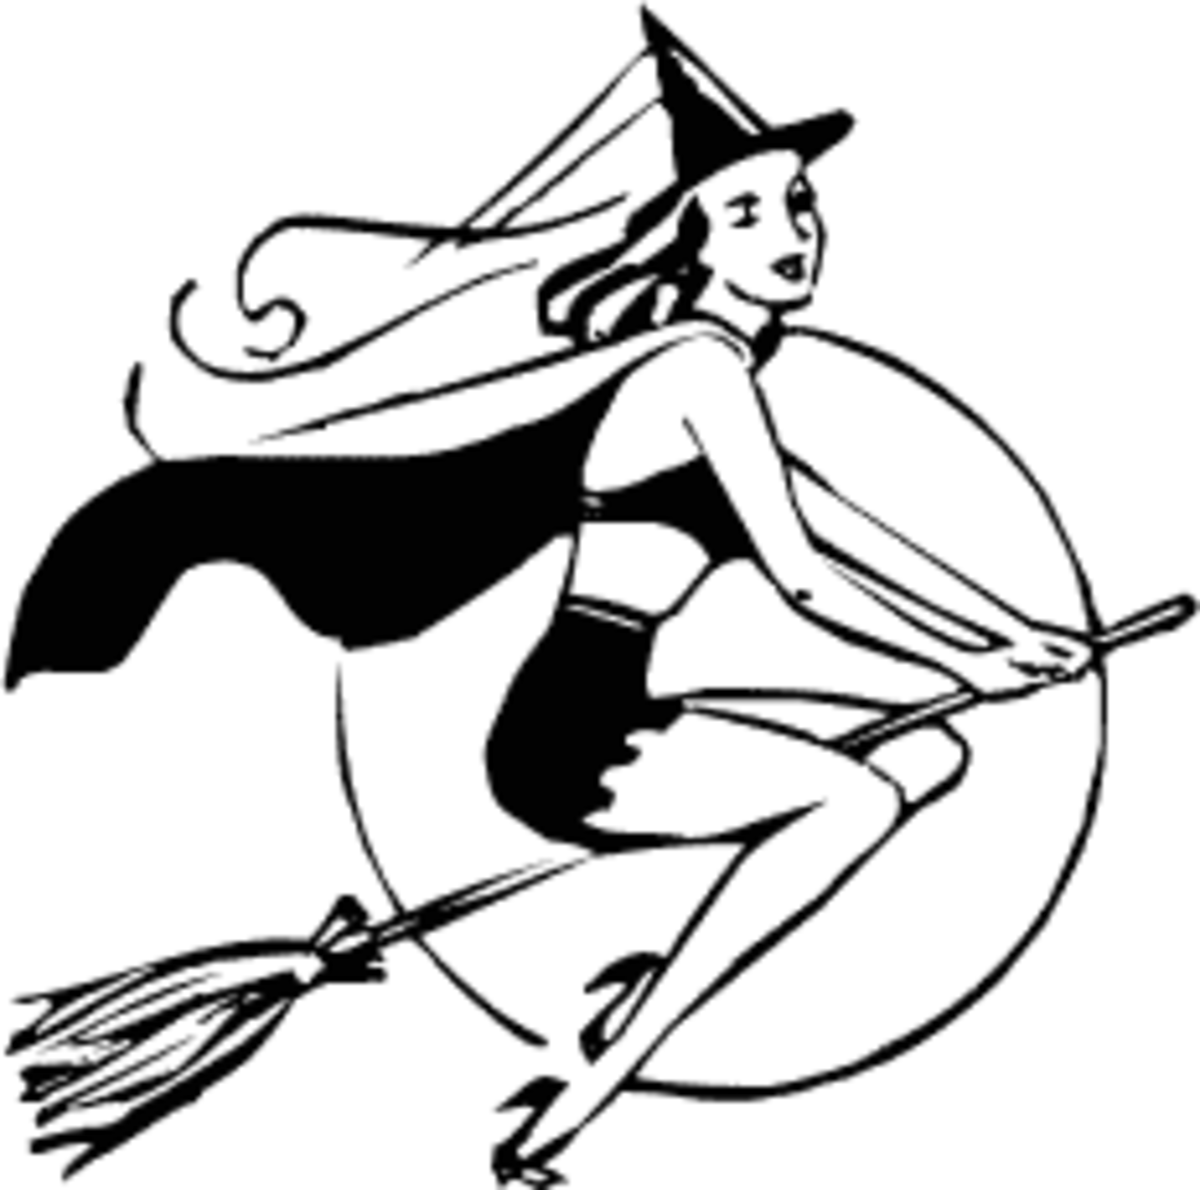 Bewitched! This cute witch looks harmless.